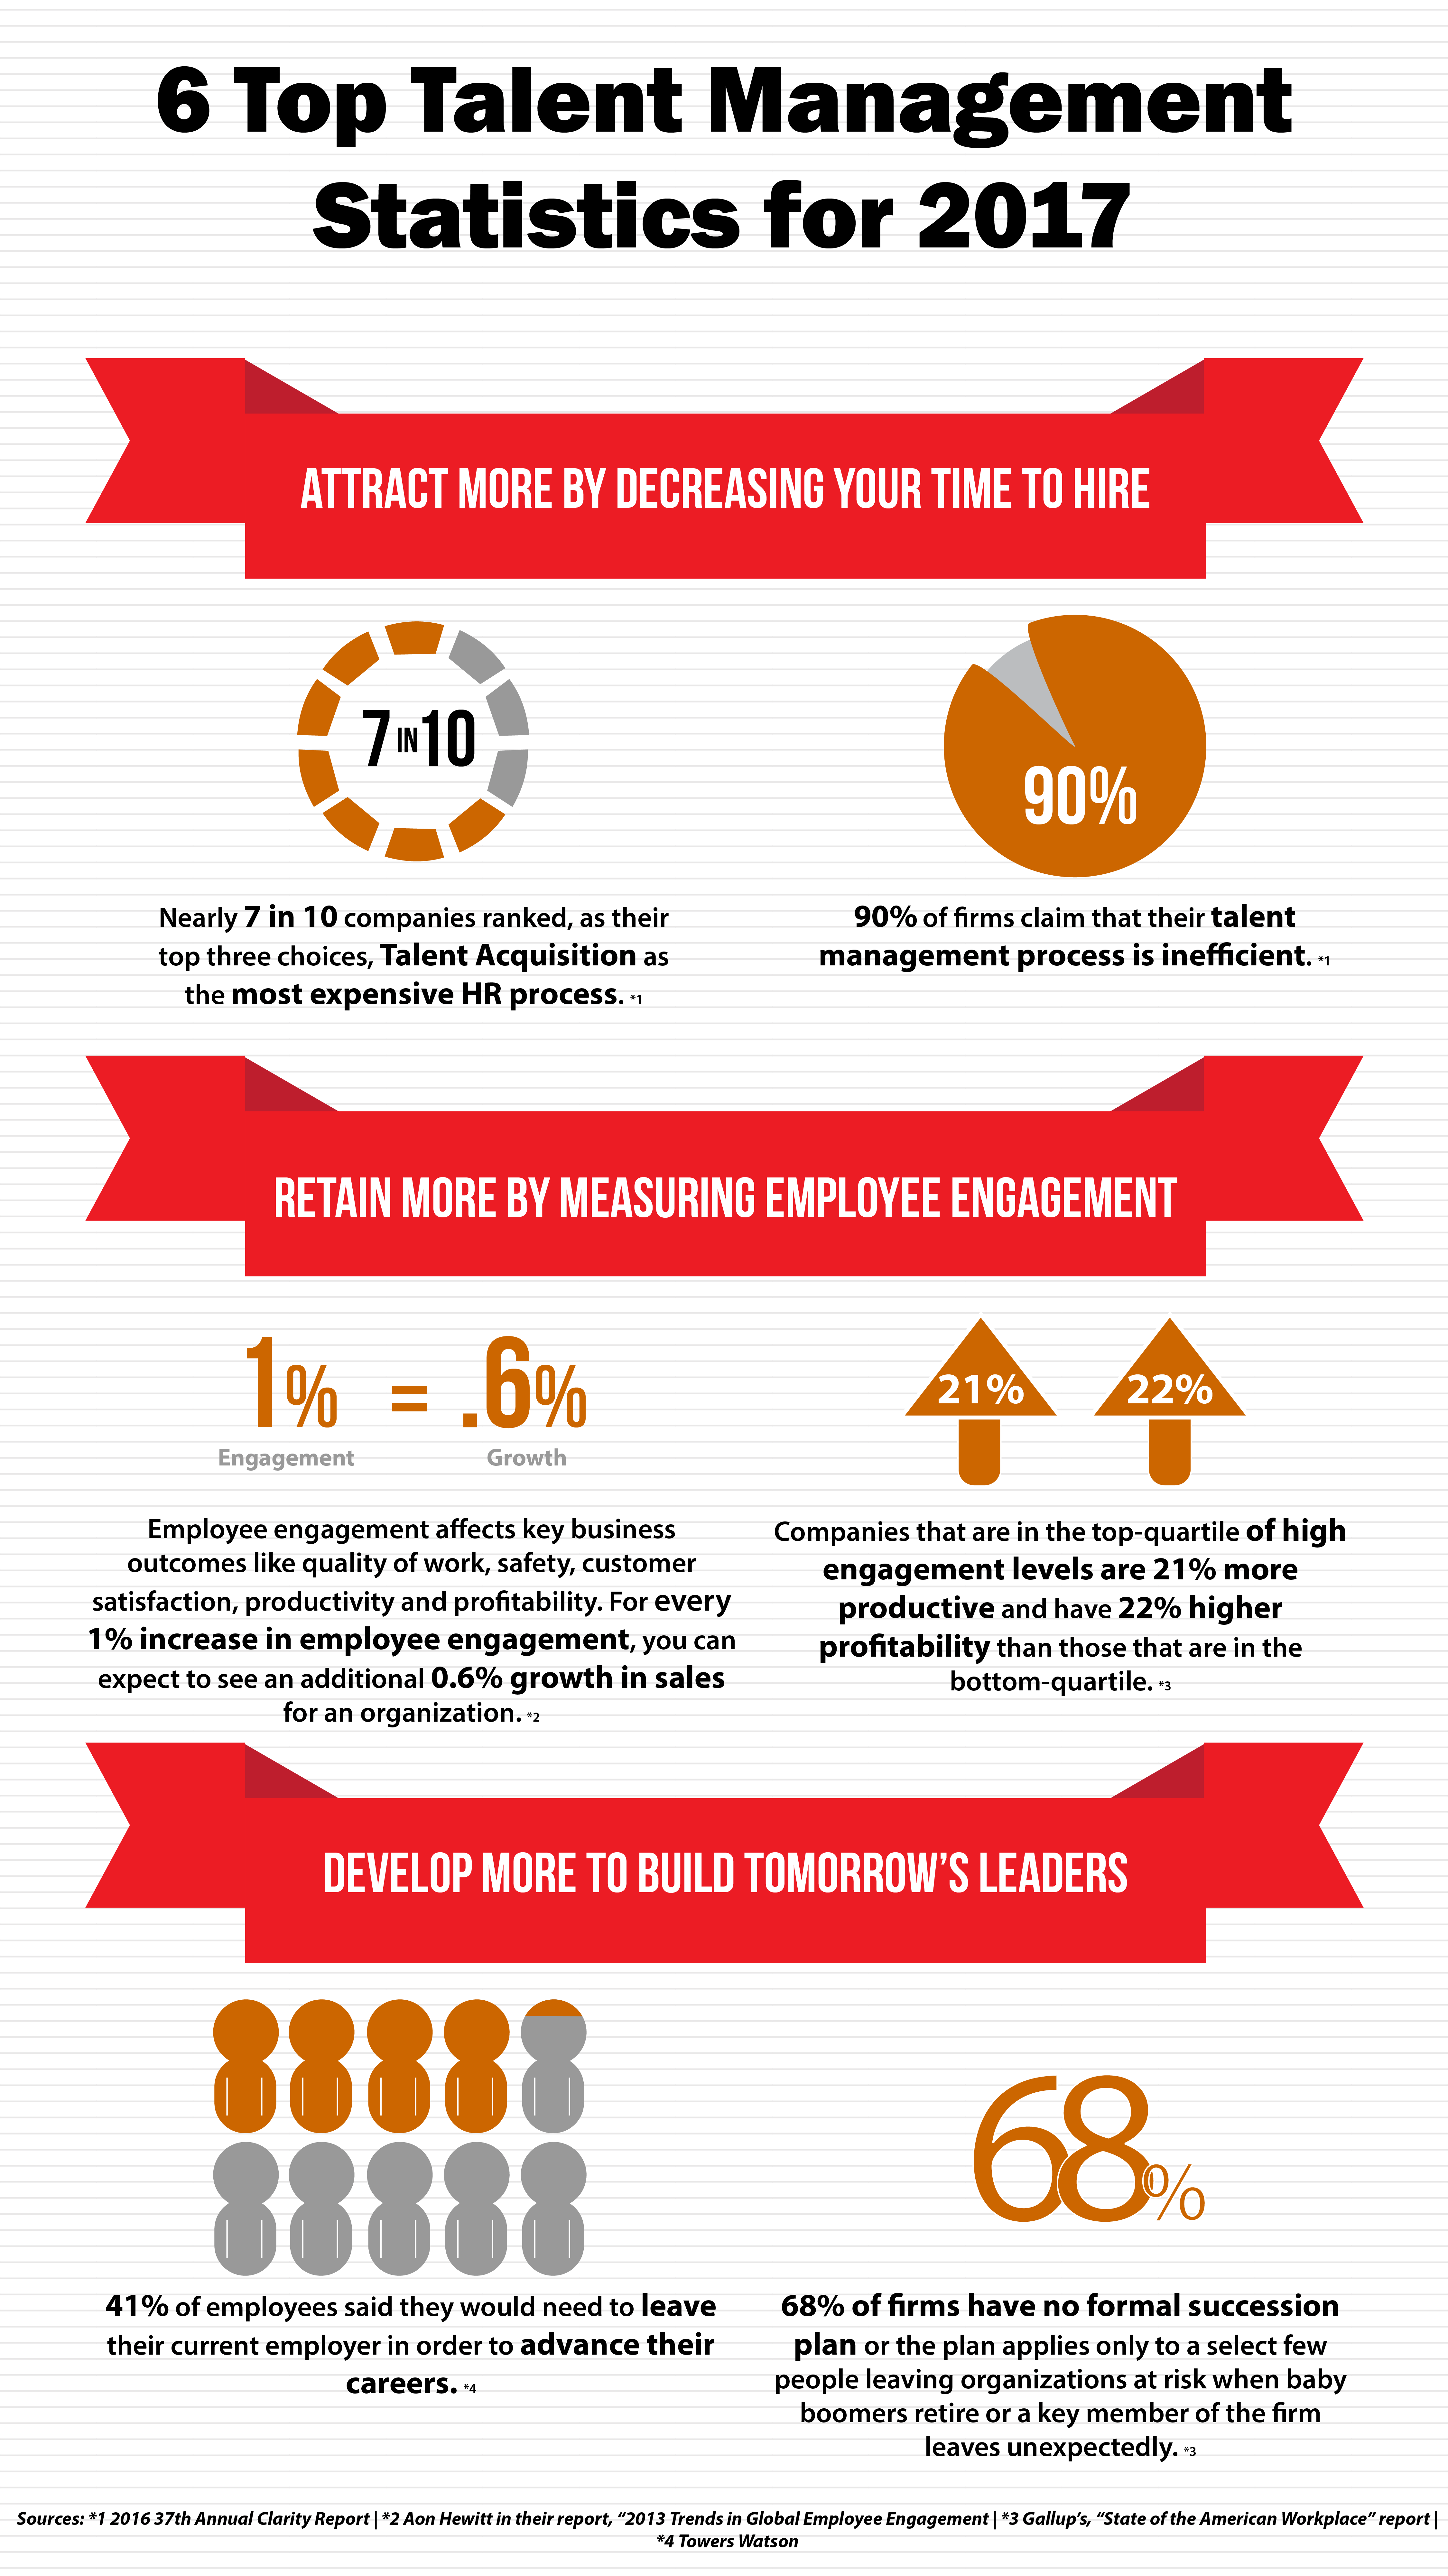 6 Key Statistics That Fuel The Competition For Talent